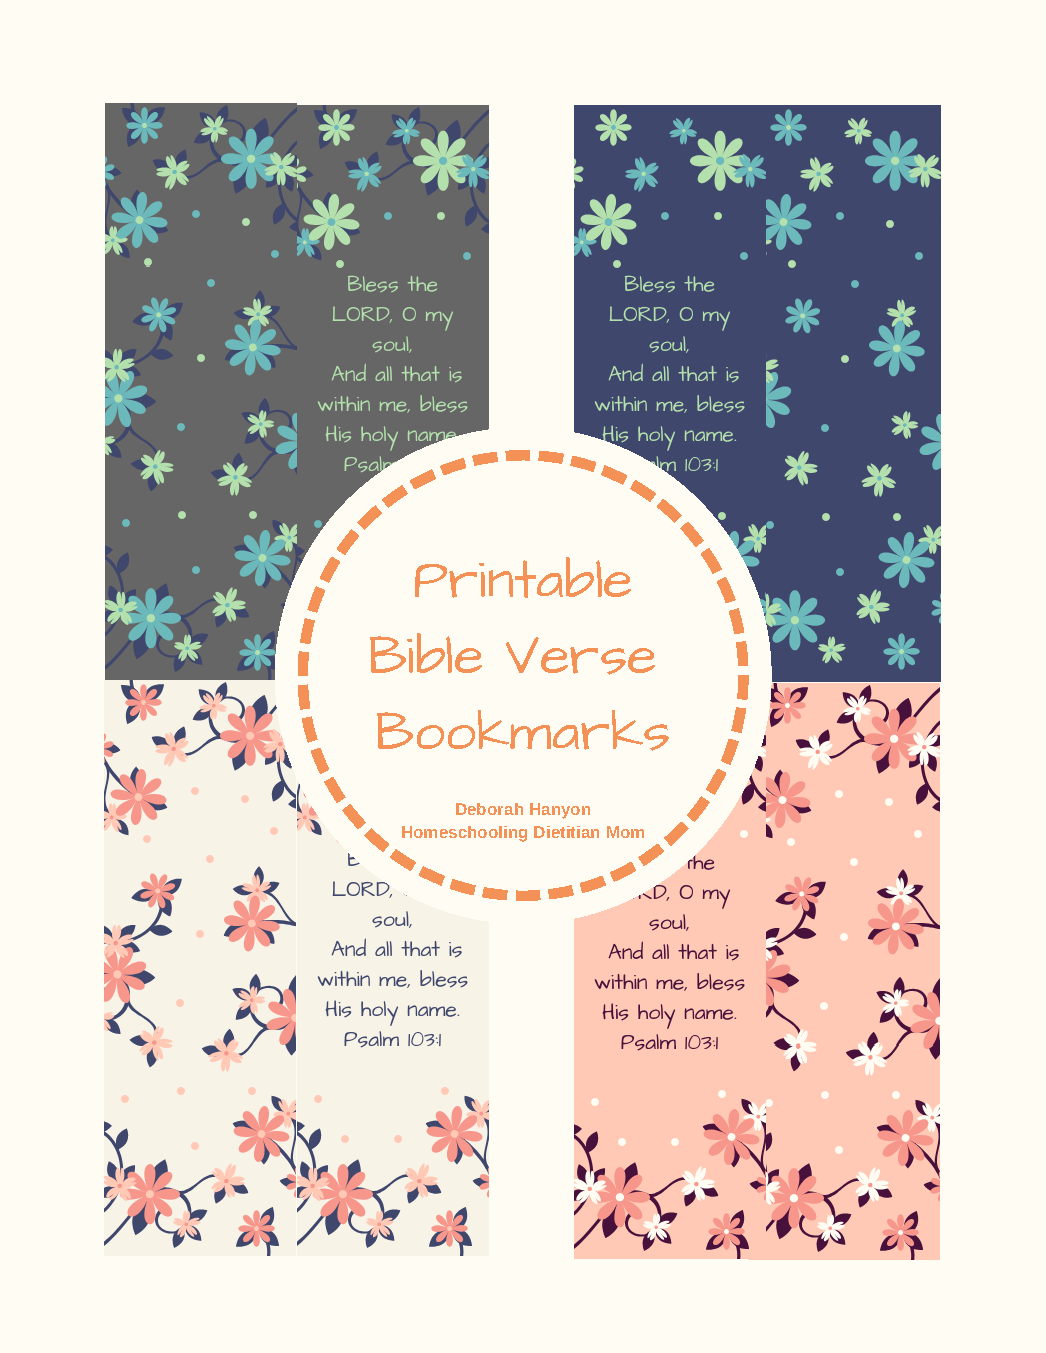 picture relating to Printable Bible Bookmarks known as Psalm 103:1 Printable Bible Verse Bookmarks - Homeschooling Dieian Mother